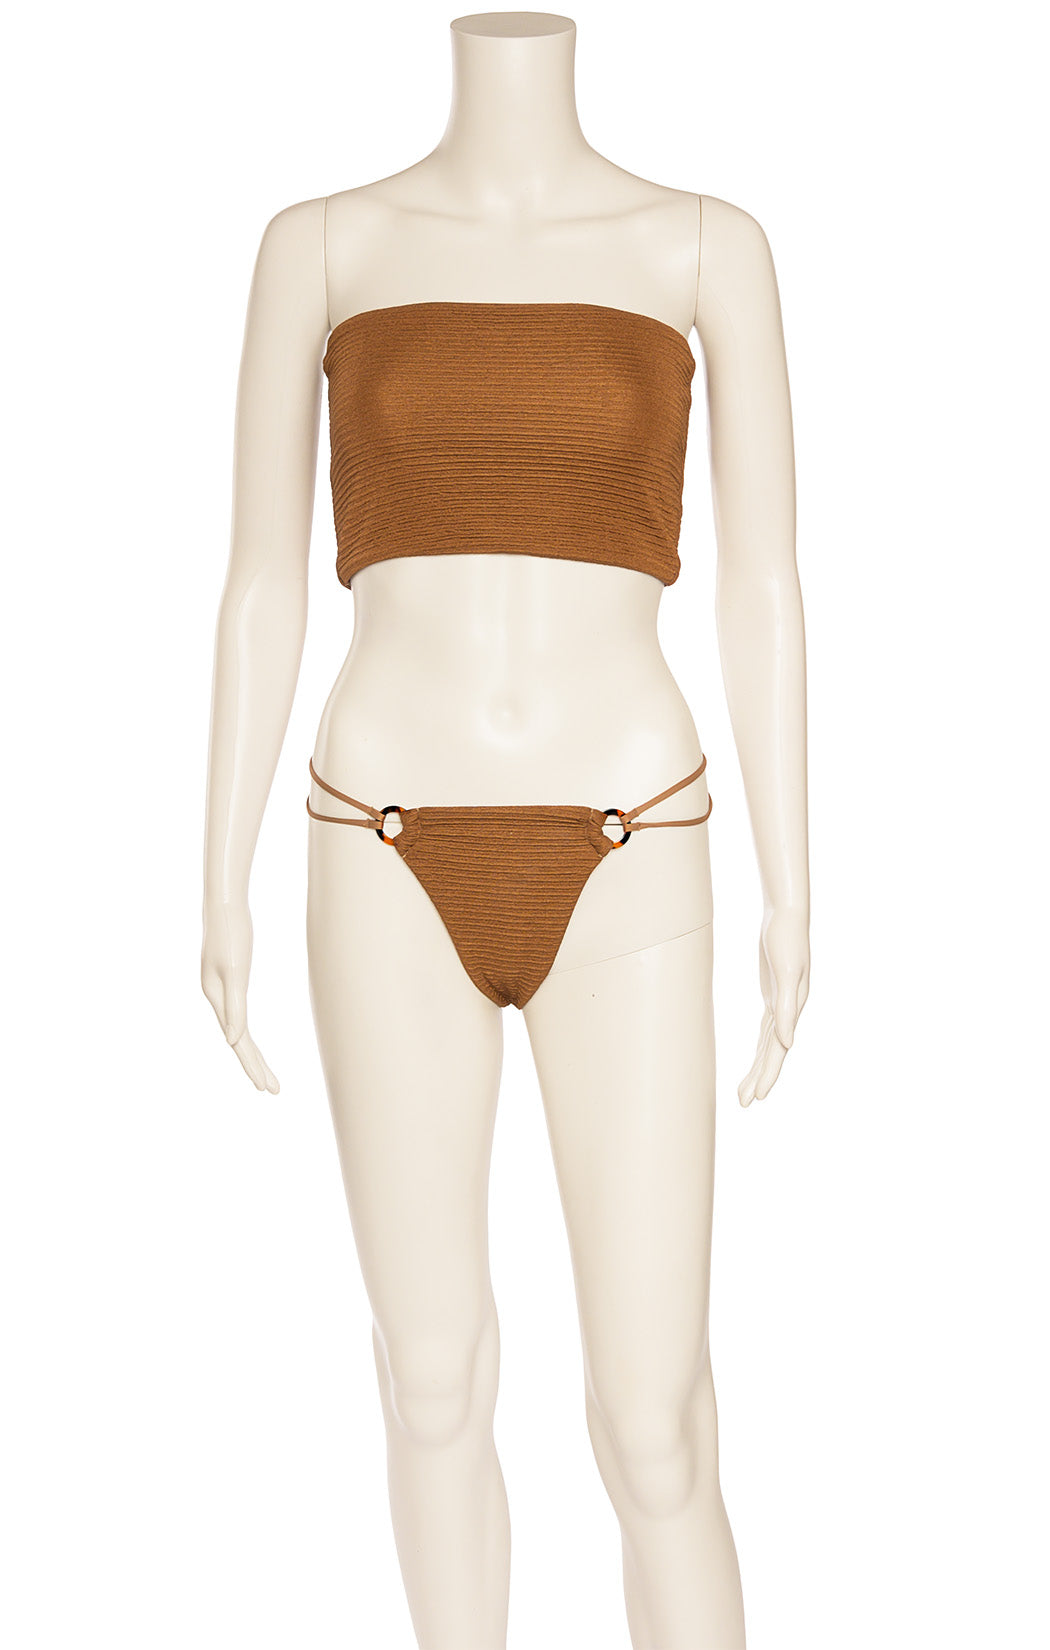 Front view of JUILLET Bikini Size: Top - Small, Bottom - Medium